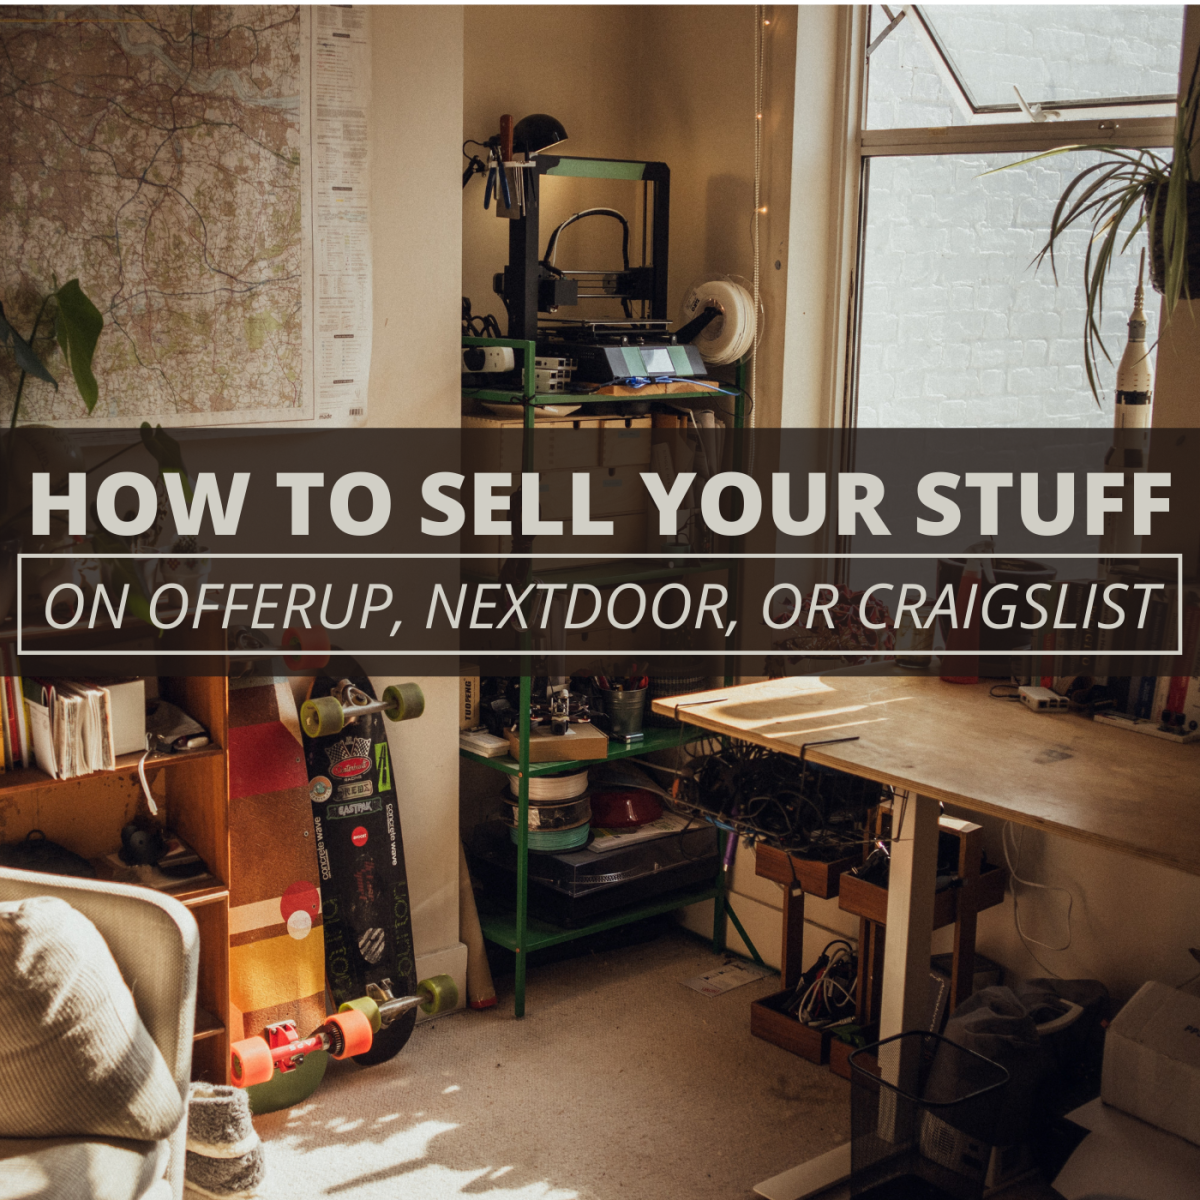 Selling at local online marketplaces can help you make money.